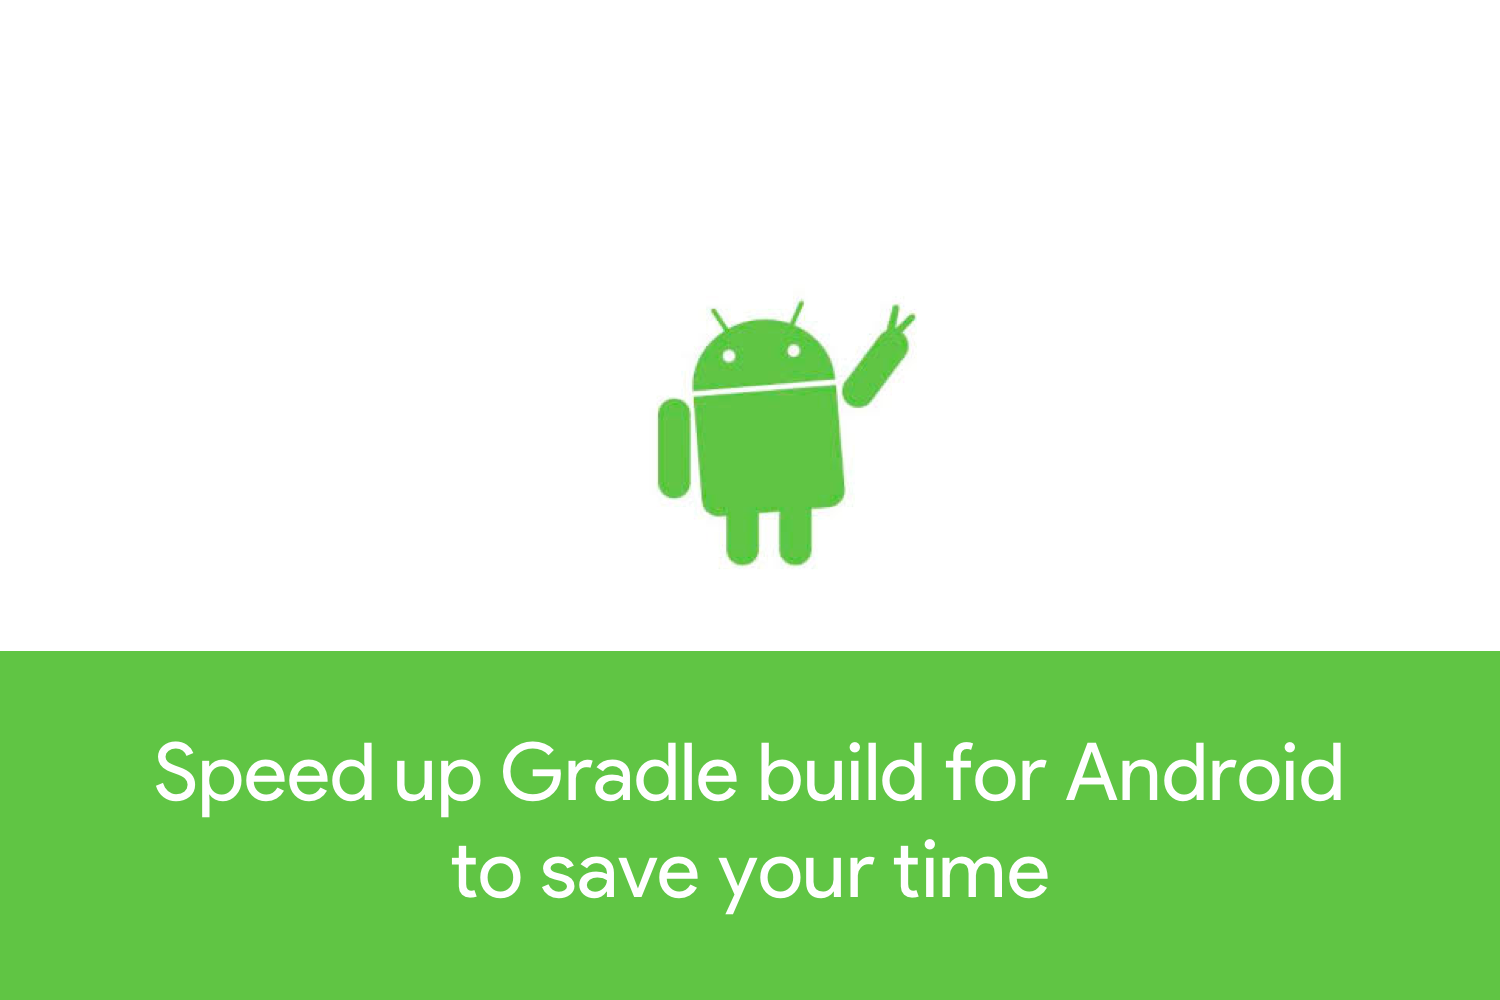 Speed up Gradle build for Android to save your time